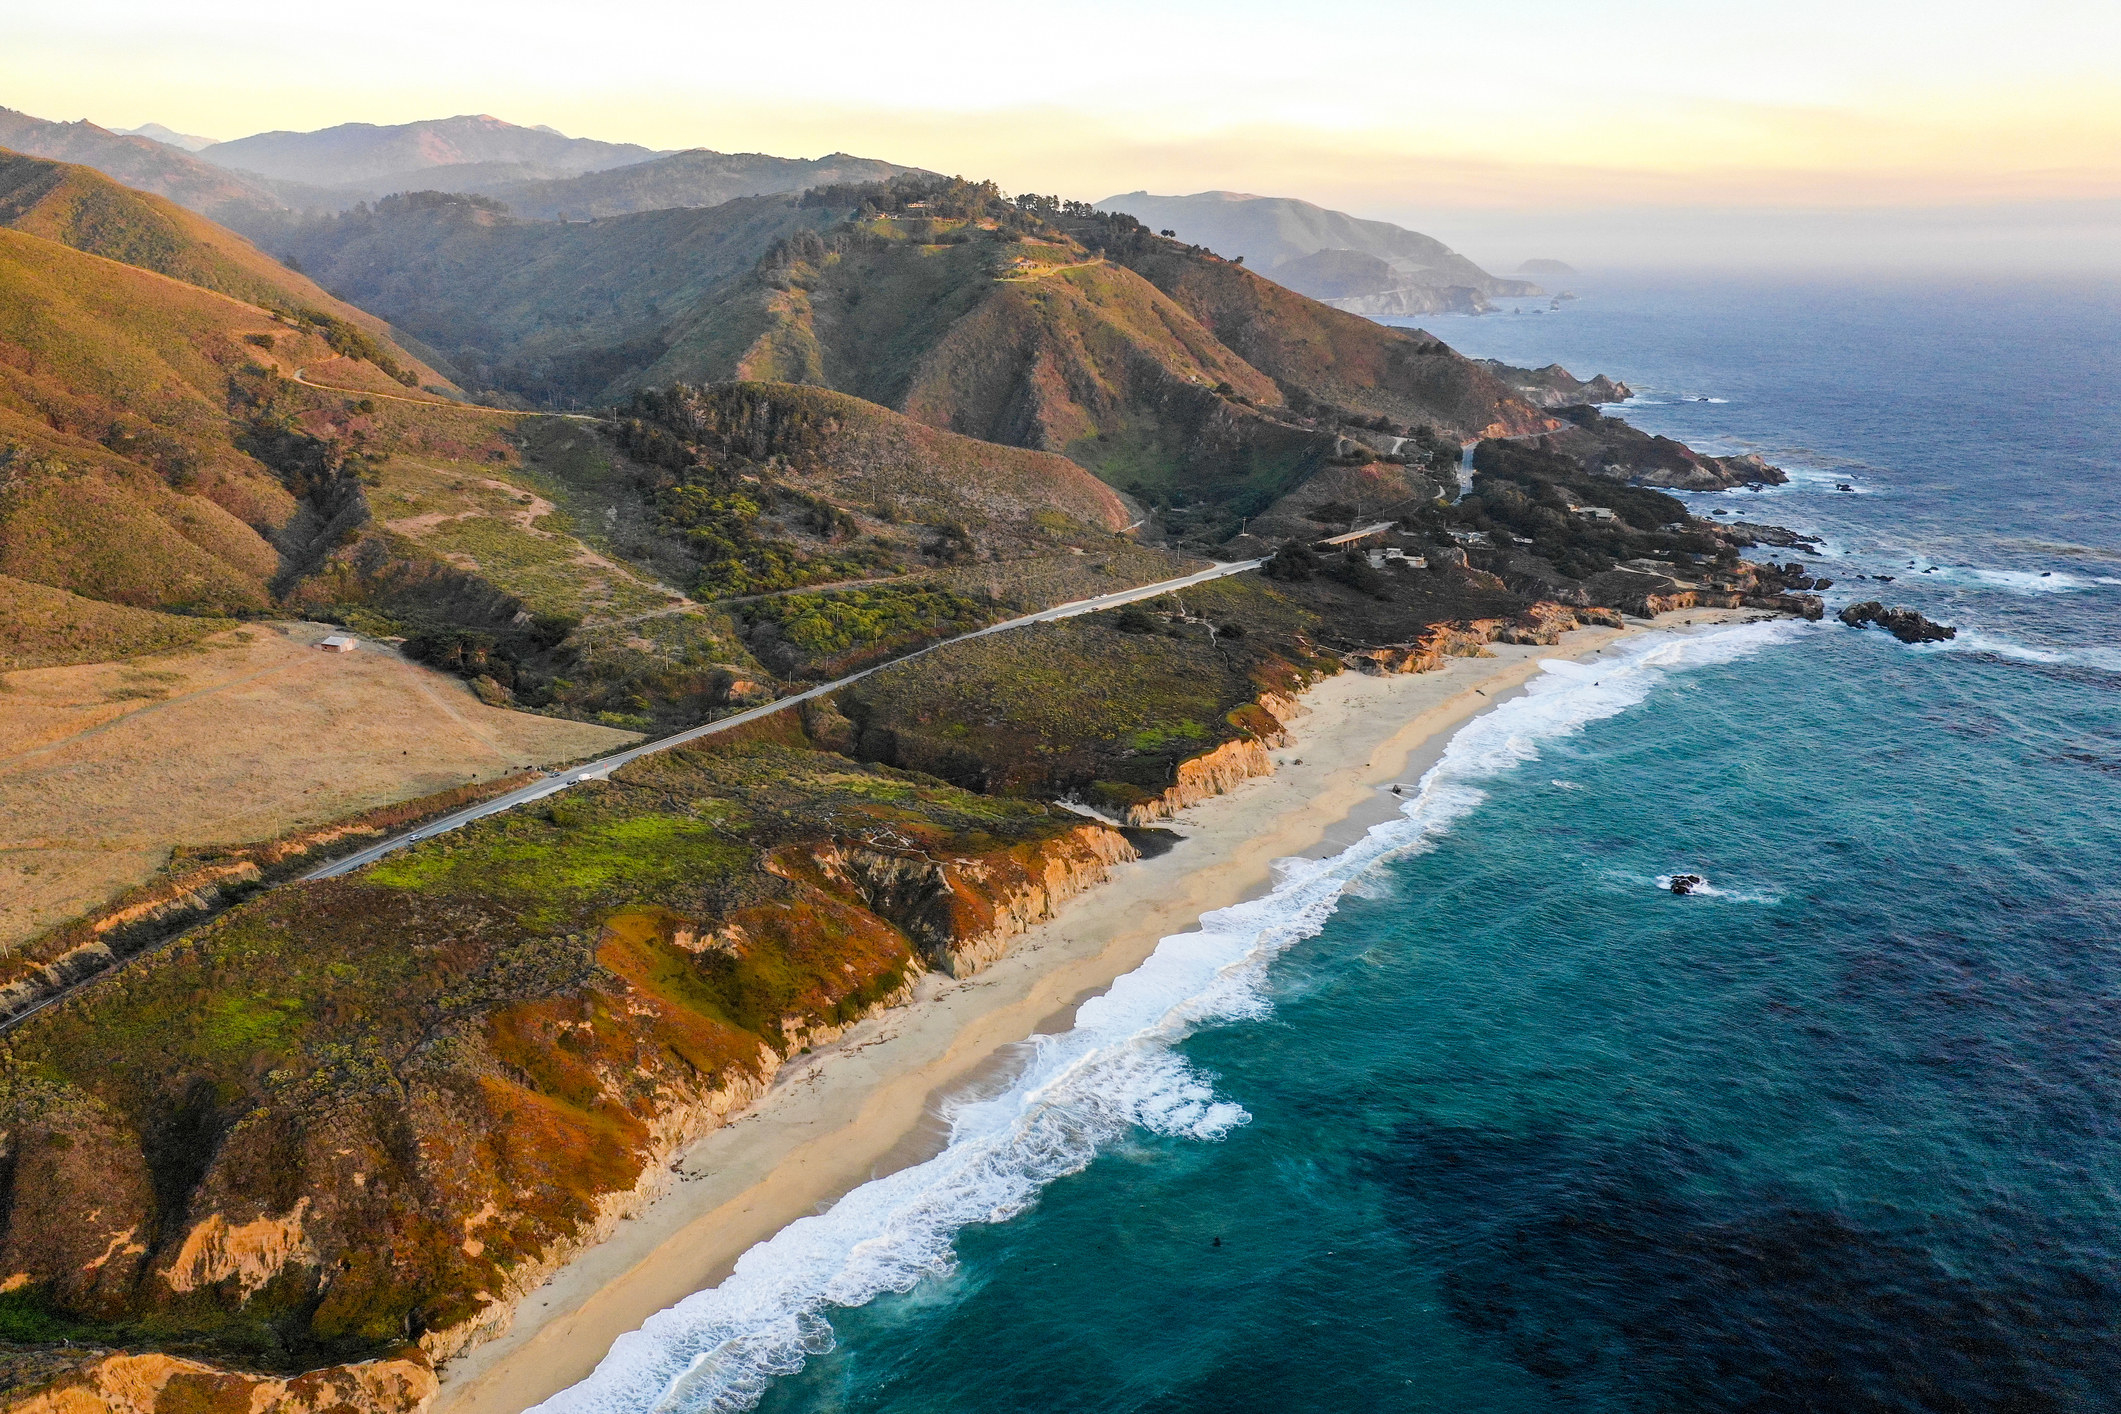 An aerial view of the coast near Big Sur with mountains and cliffs leading to a sandy beach